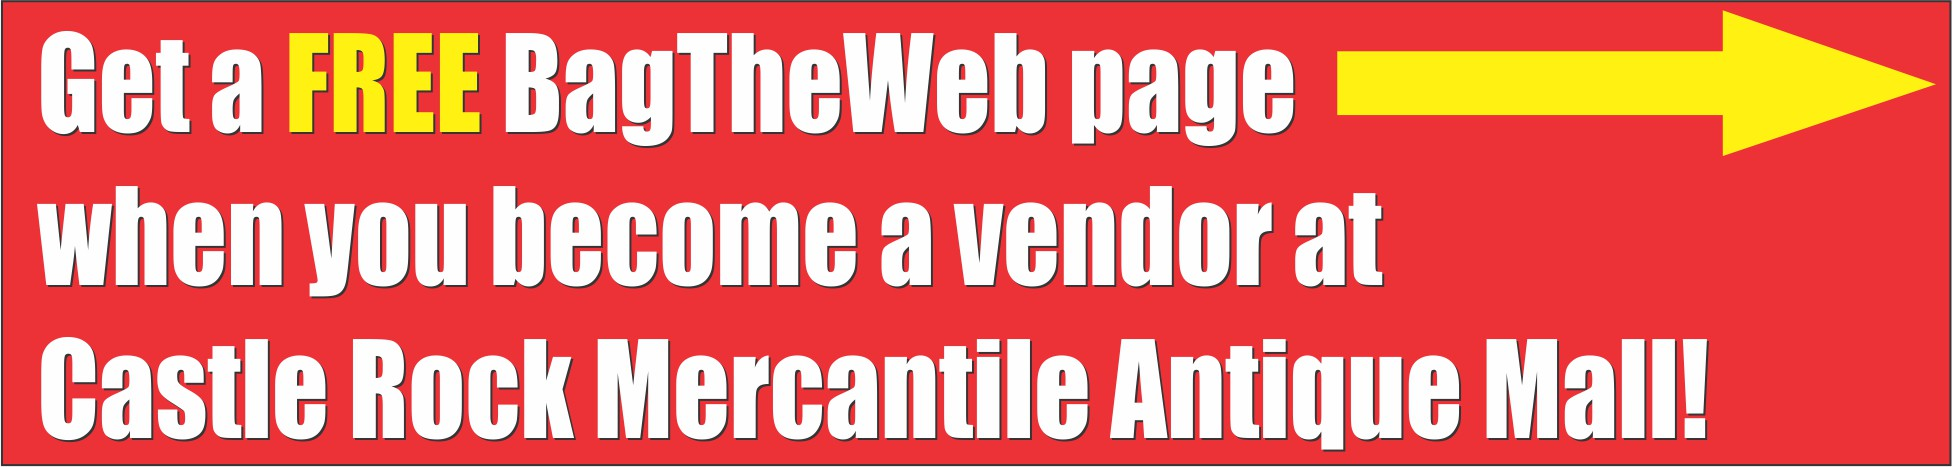 Get a FREE BagTheWeb page when you become a vendor at Castle Rock Mercantile Antique Mall!